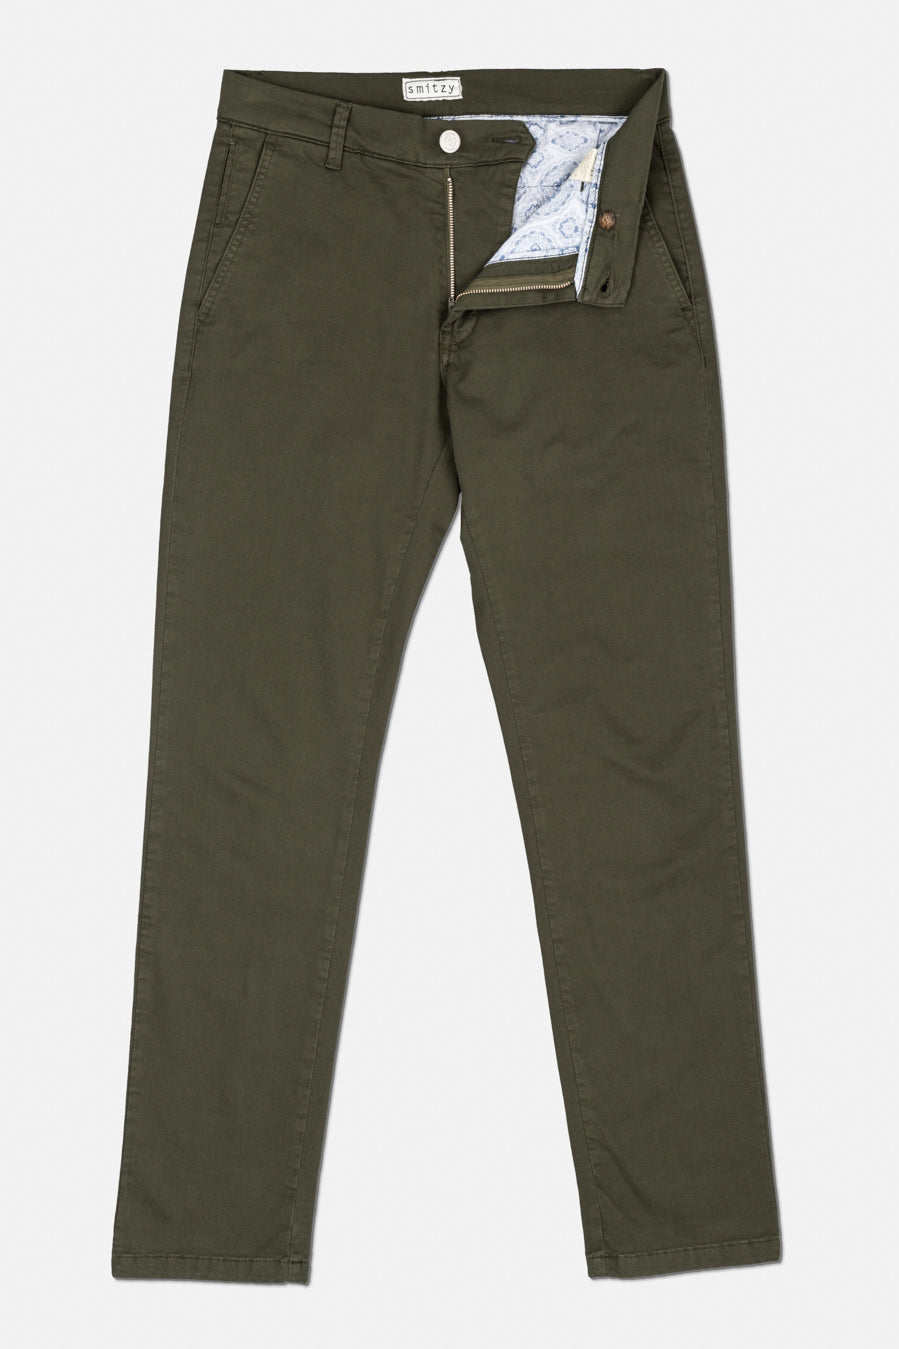 Washed Chino Extra Slim Amazon